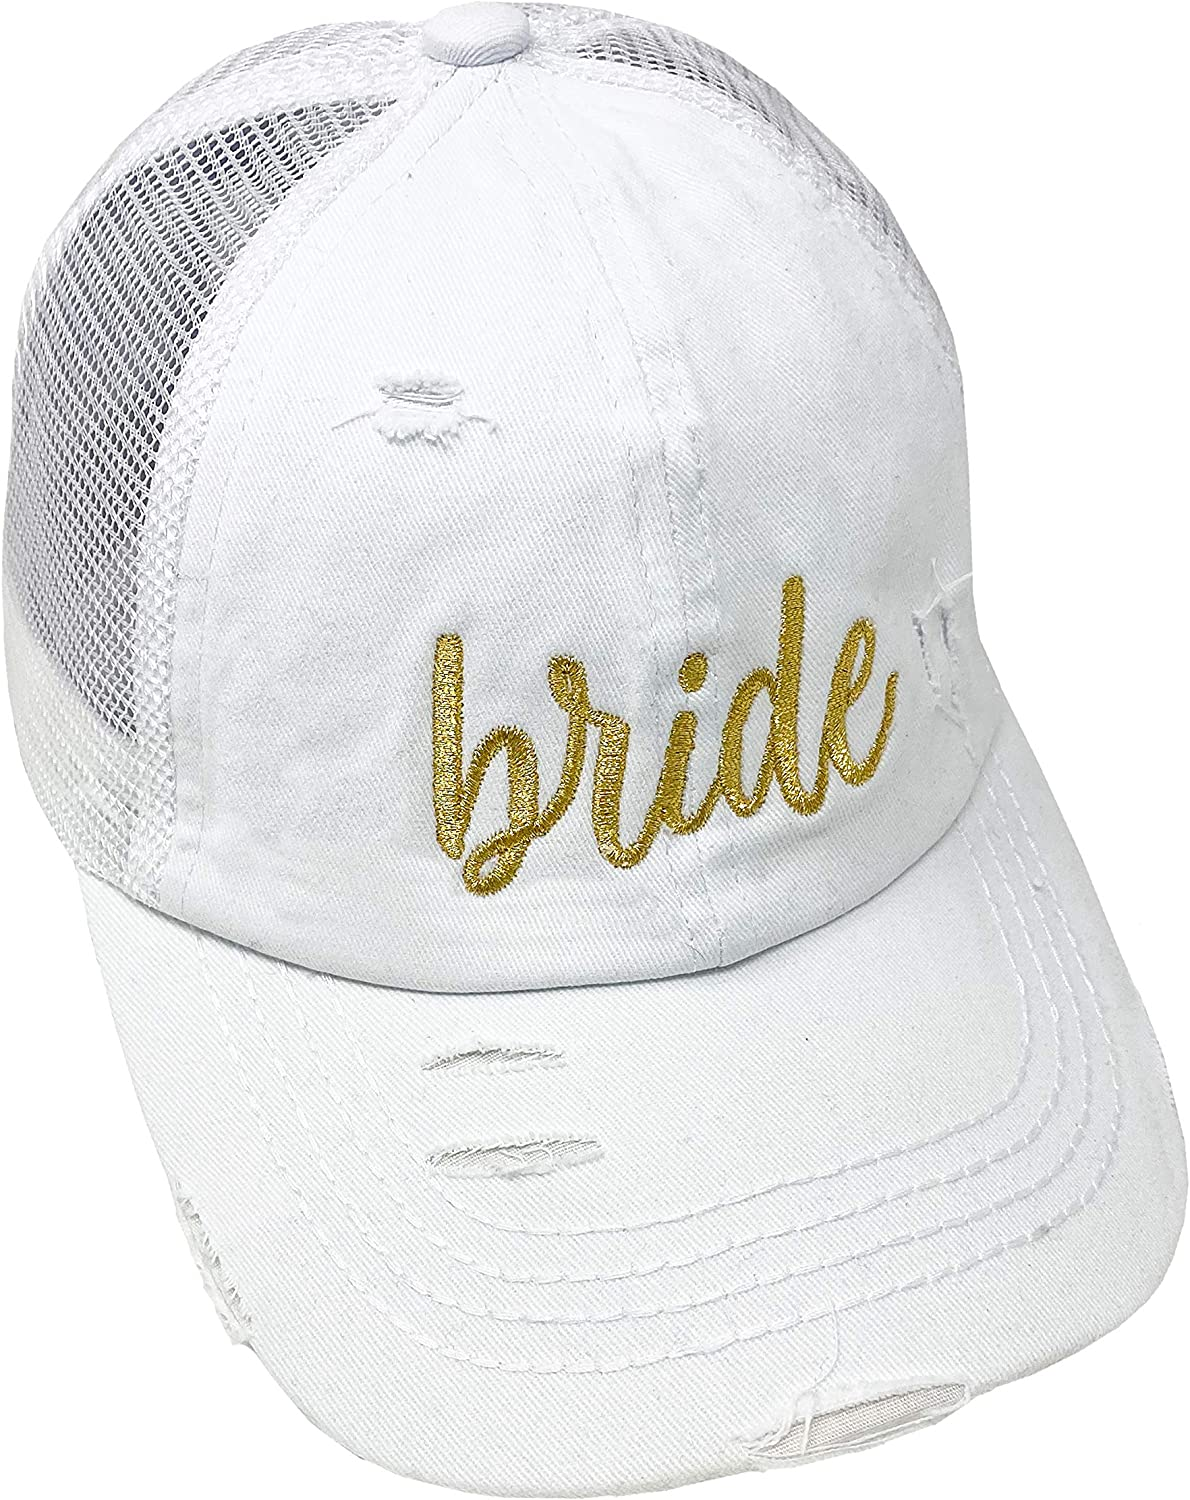 Max 75% OFF High El Paso Mall Ponytail Criss Cross White Hat - Bride